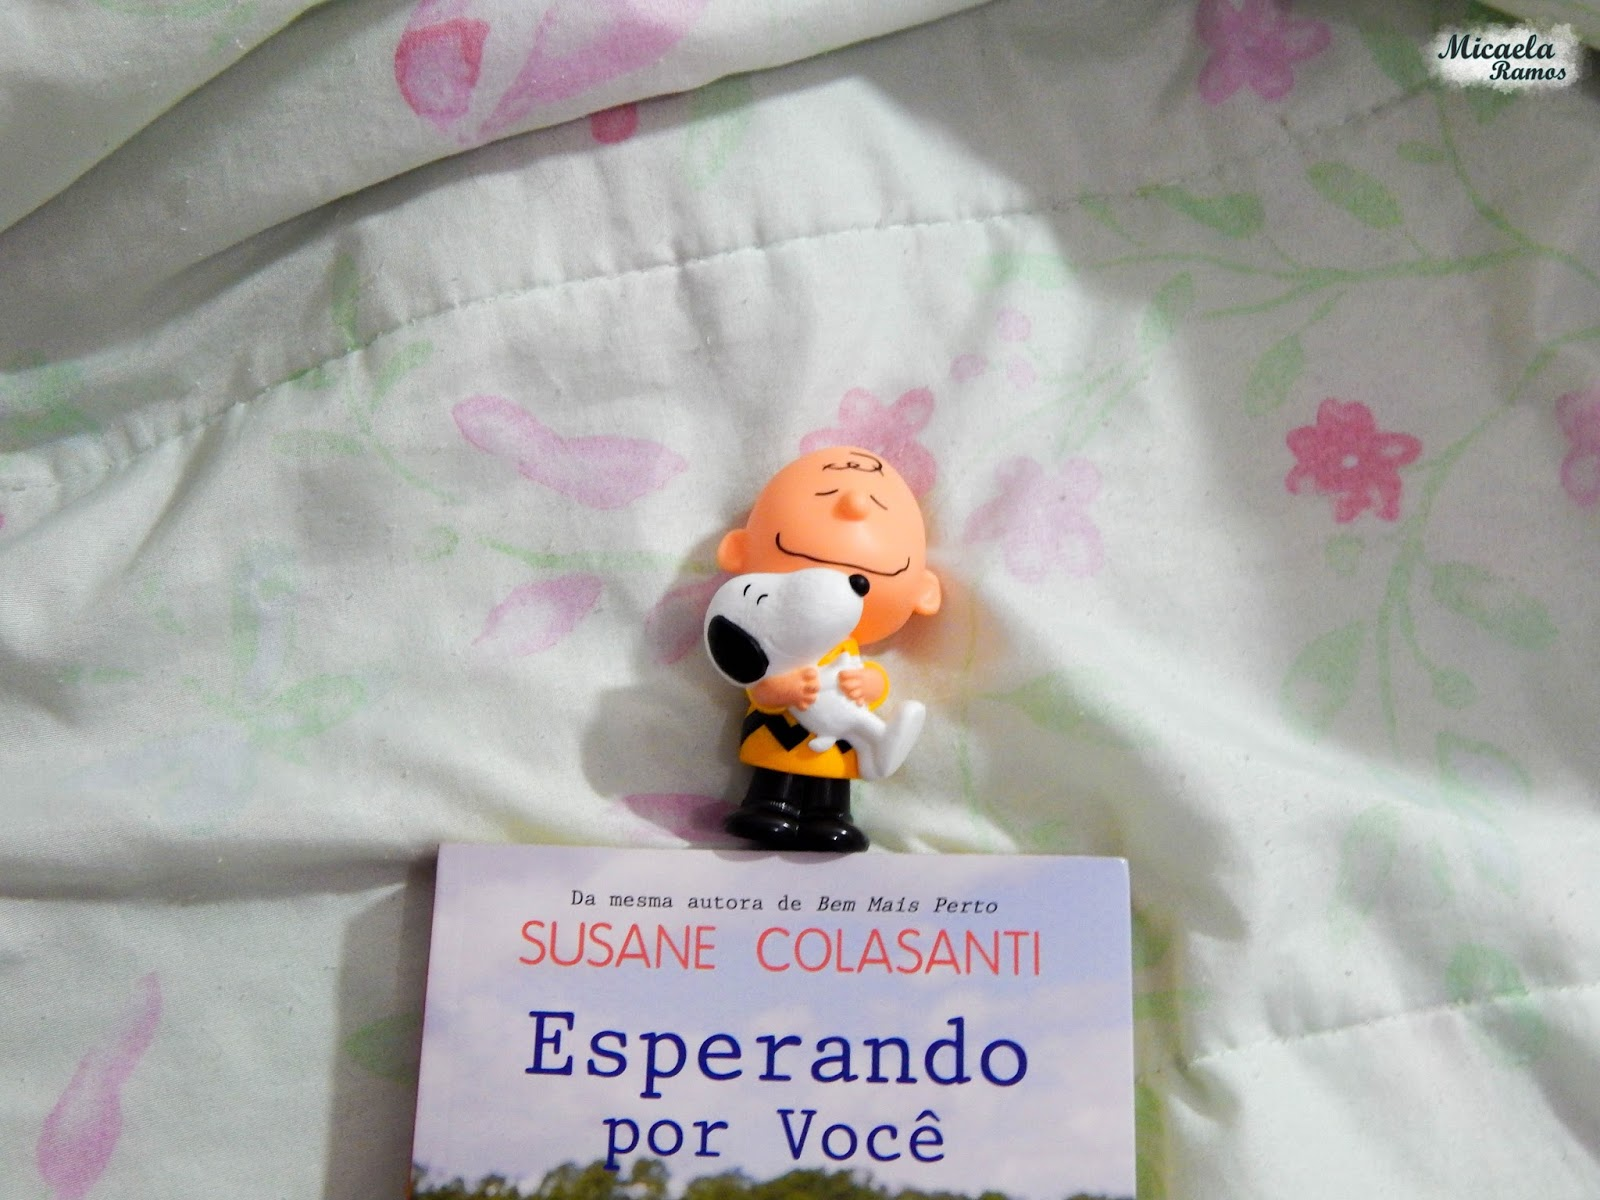 fotografia, photography, livro, book, susane colasanti, esperando por voce, waiting for you, micaela ramos, wanderlust, snoopy, action figure,